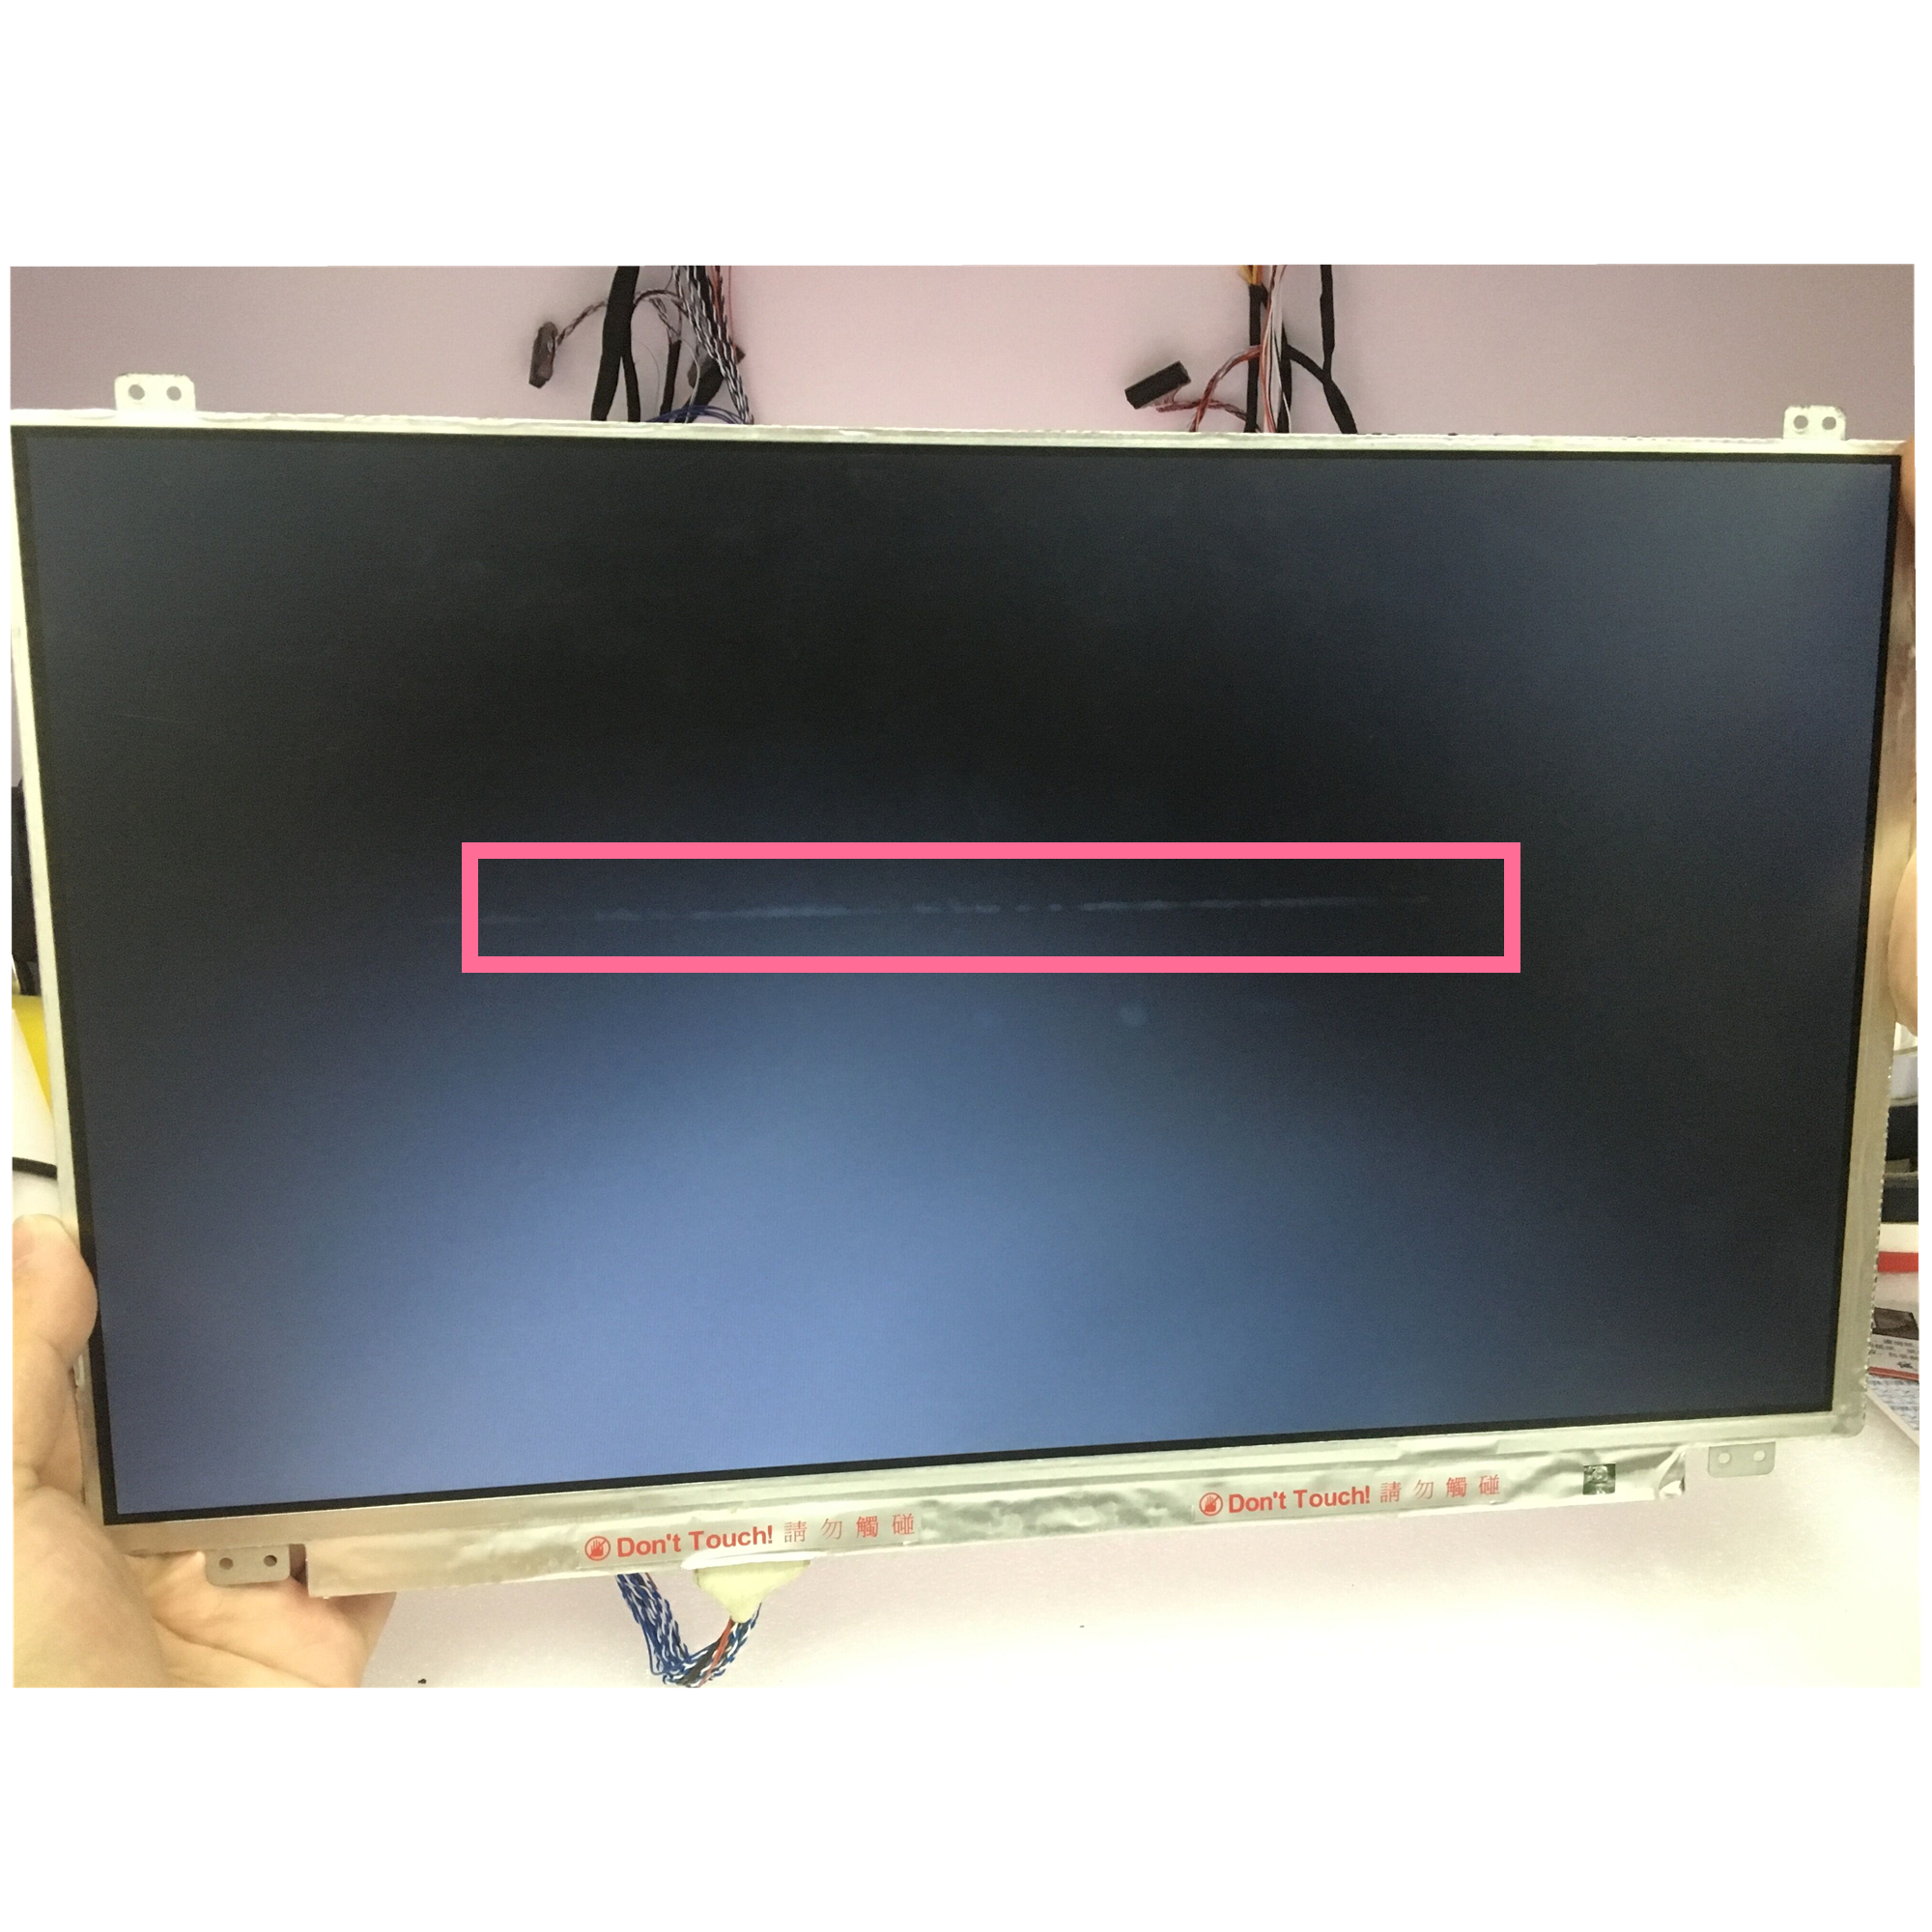 B Screen B156XW04 V.5 V.6 fit LP156WHB TLA1 LP156WH3 TLS1 TLT1 N156BGE-L31 L41 LTN156AT20 LTN156AT30 15.6''Slim 1366*768 40 pins image